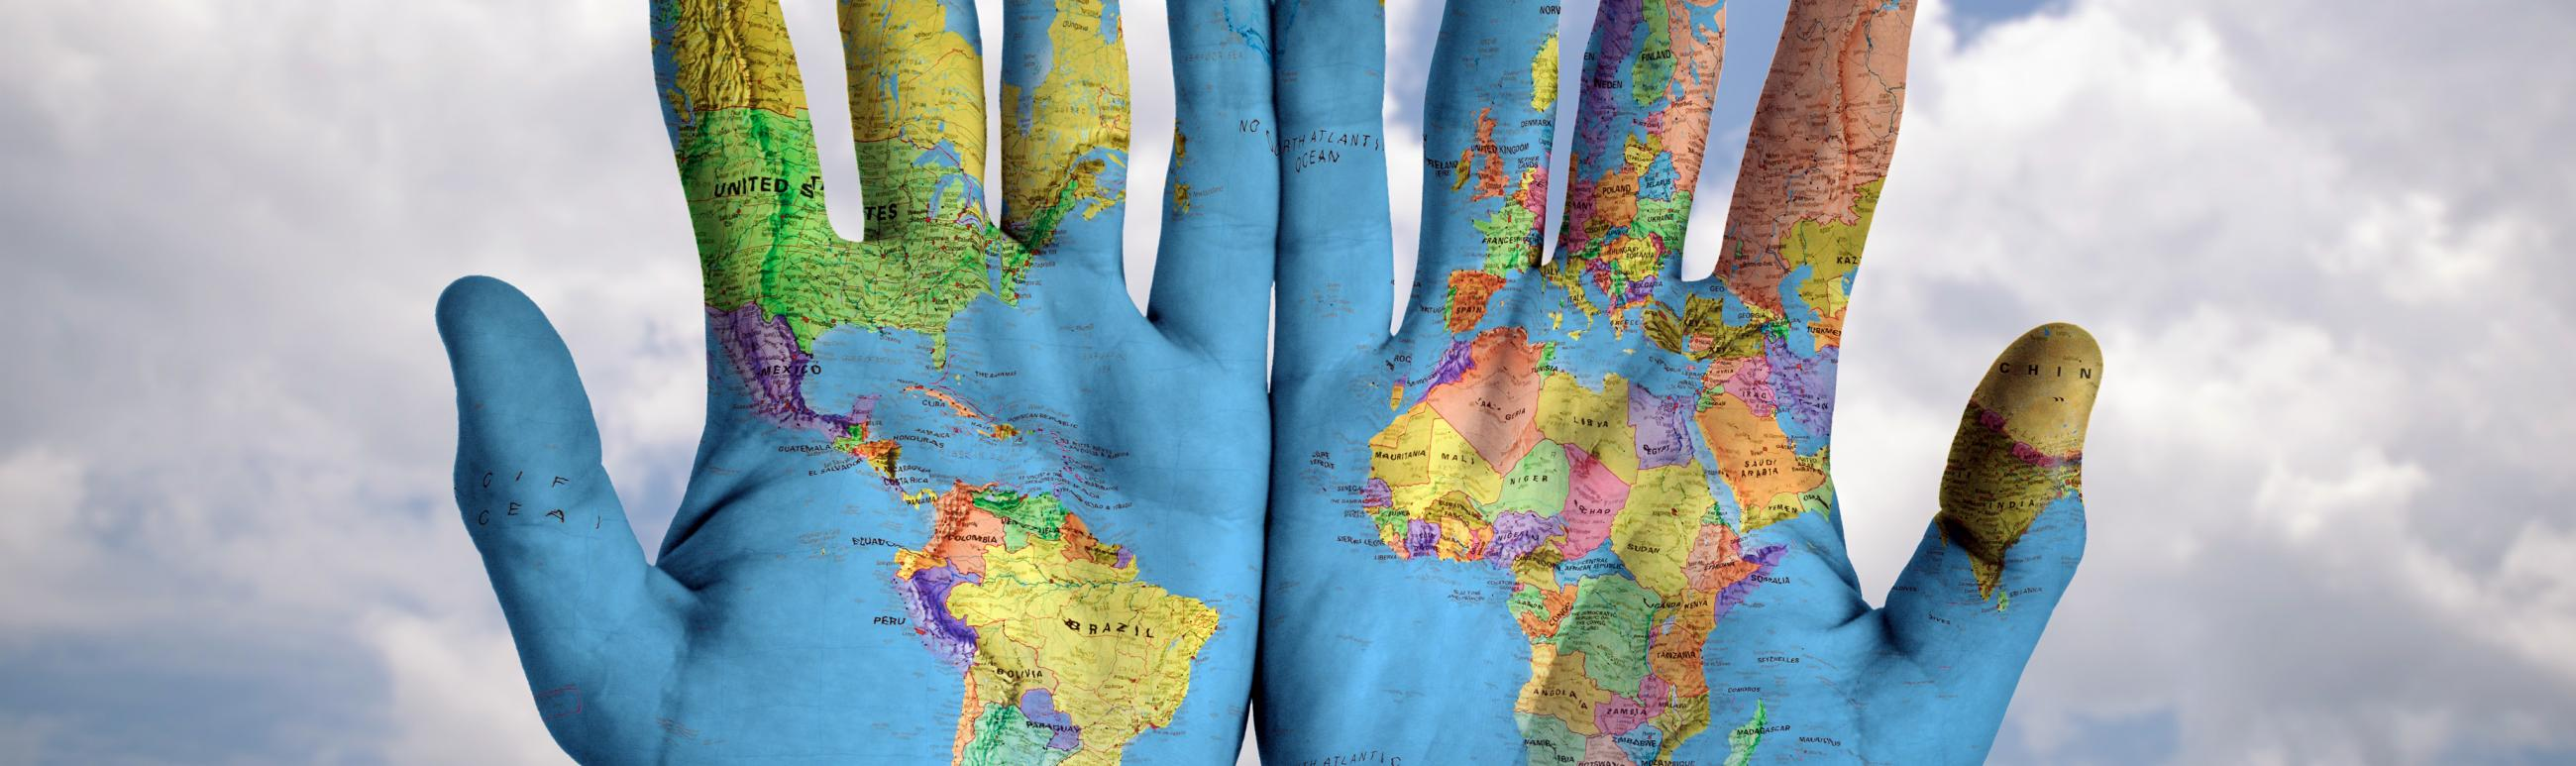 World of the map on hands